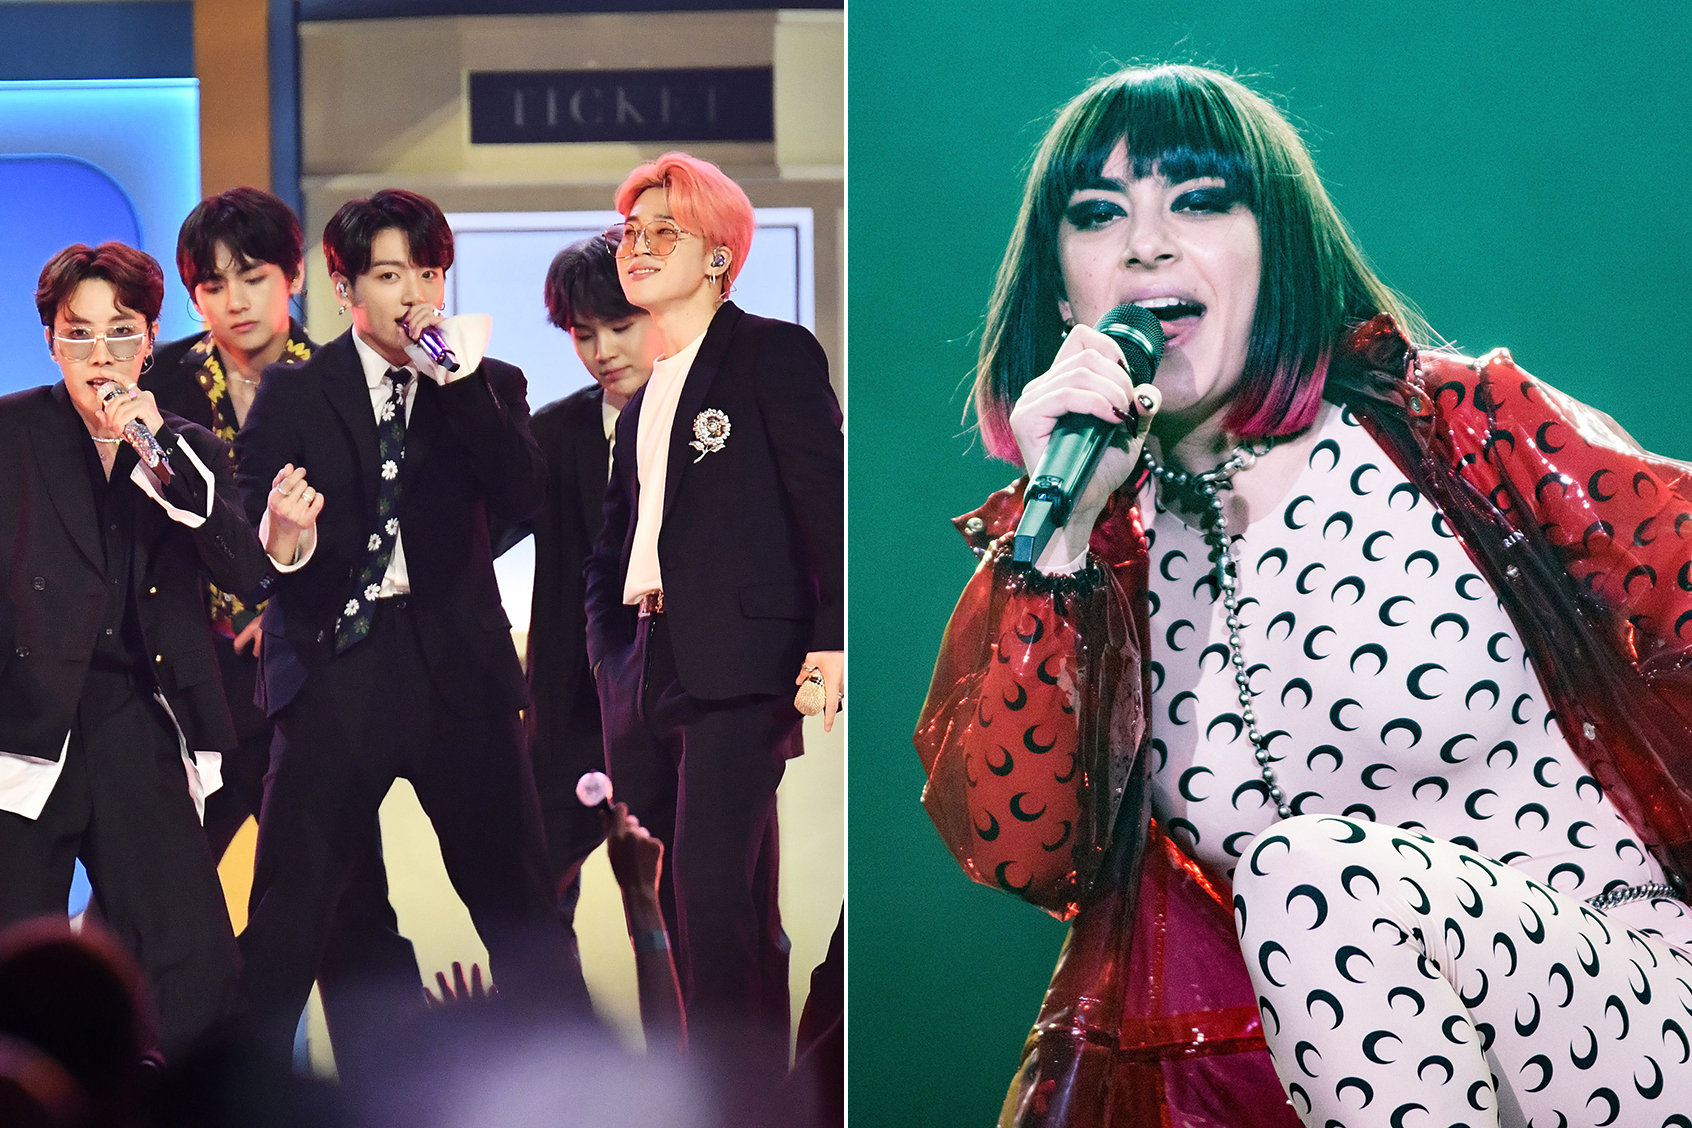 Dream Glow' Is New Song From BTS, Charli XCX: Listen – Rolling Stone